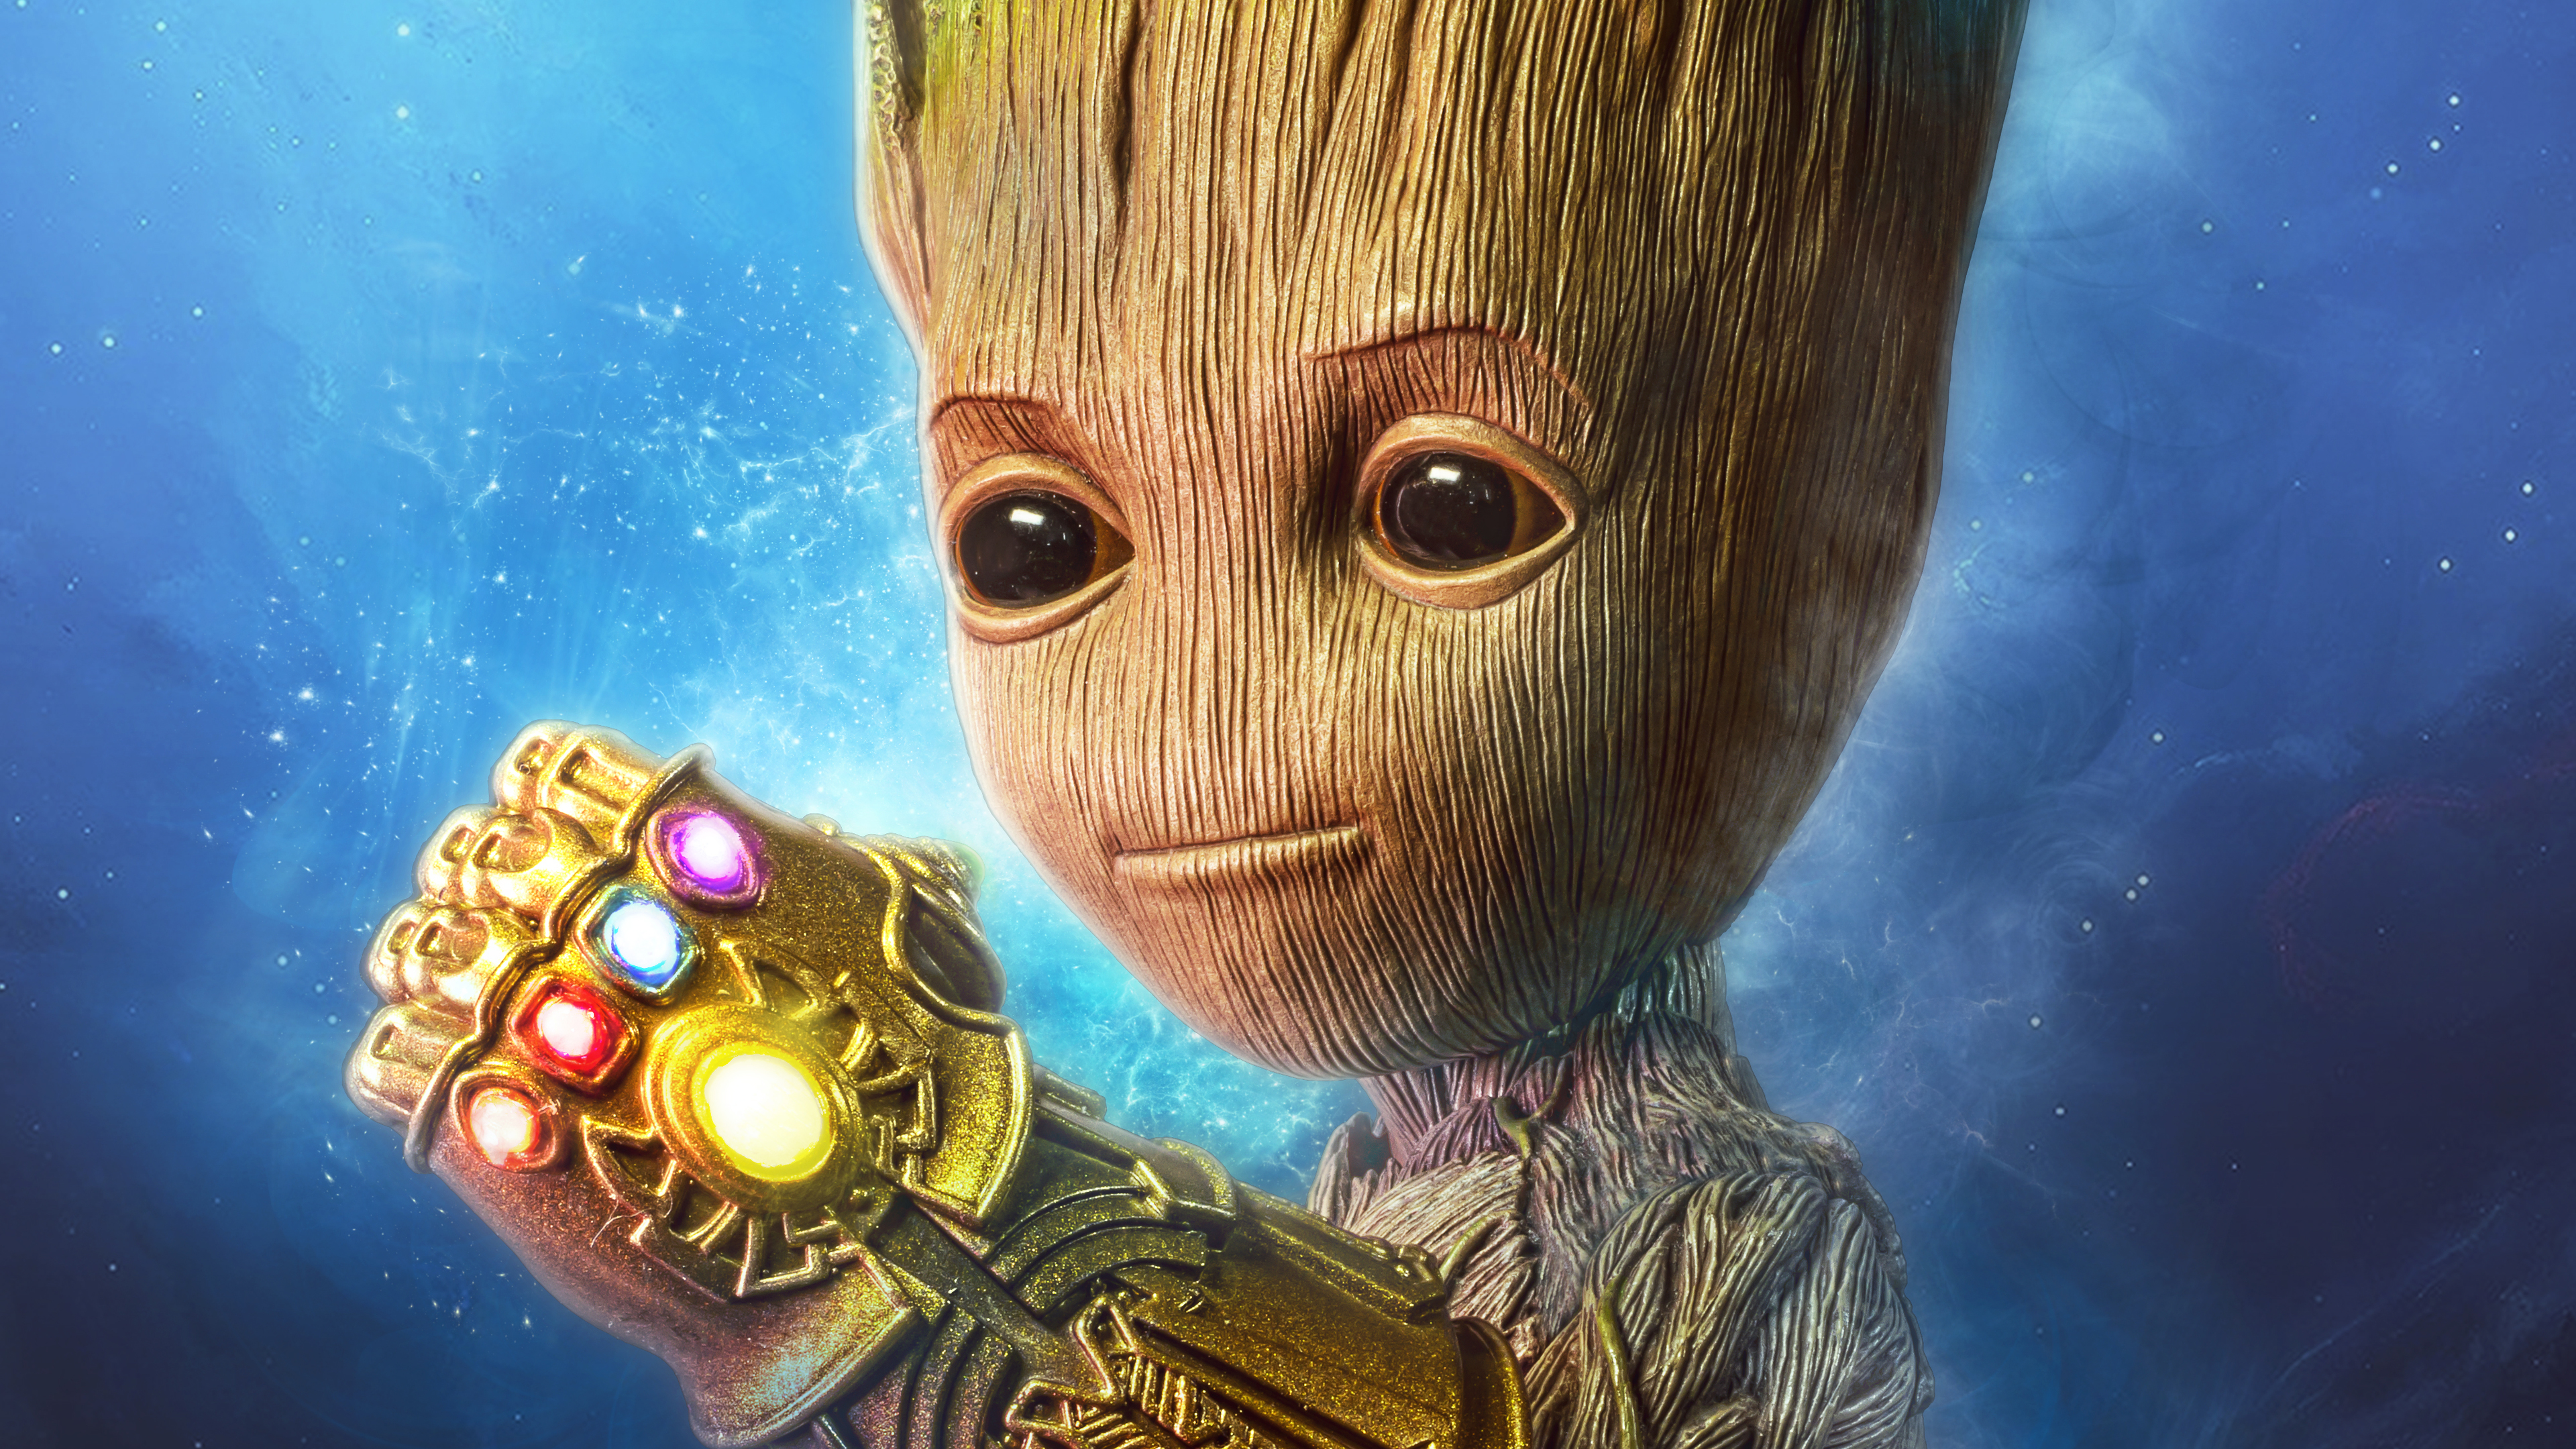 baby groot gauntlet 4k 1540746438 - Baby Groot Gauntlet 4k - superheroes wallpapers, hd-wallpapers, baby groot wallpapers, 4k-wallpapers